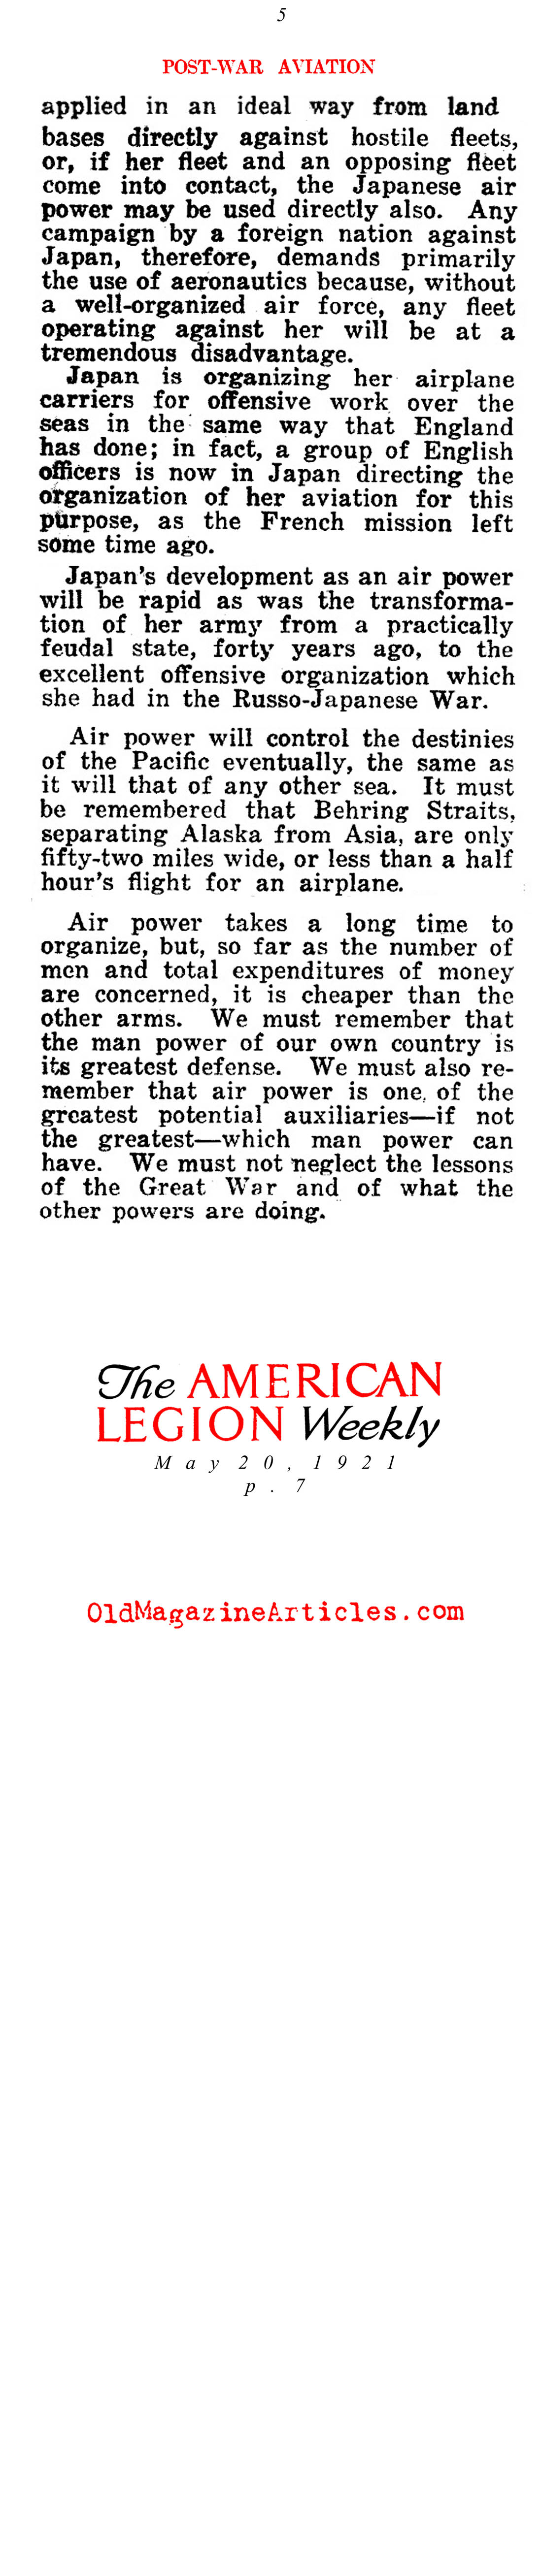 General Billy Mitchell:  Advocate of  American Airpower (American Legion Weekly,1921)